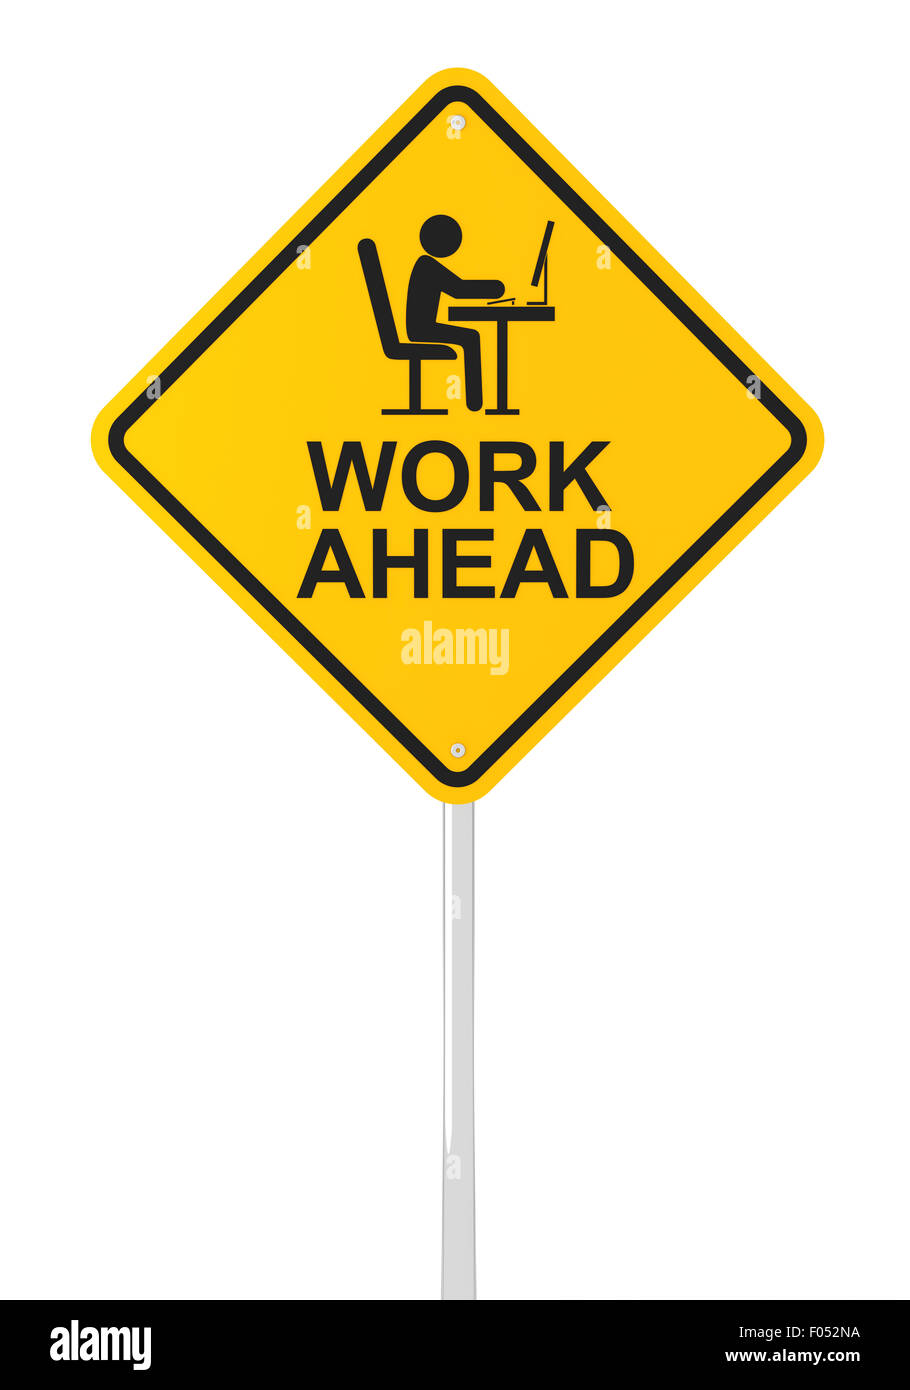 Work ahead sign - Stock Image